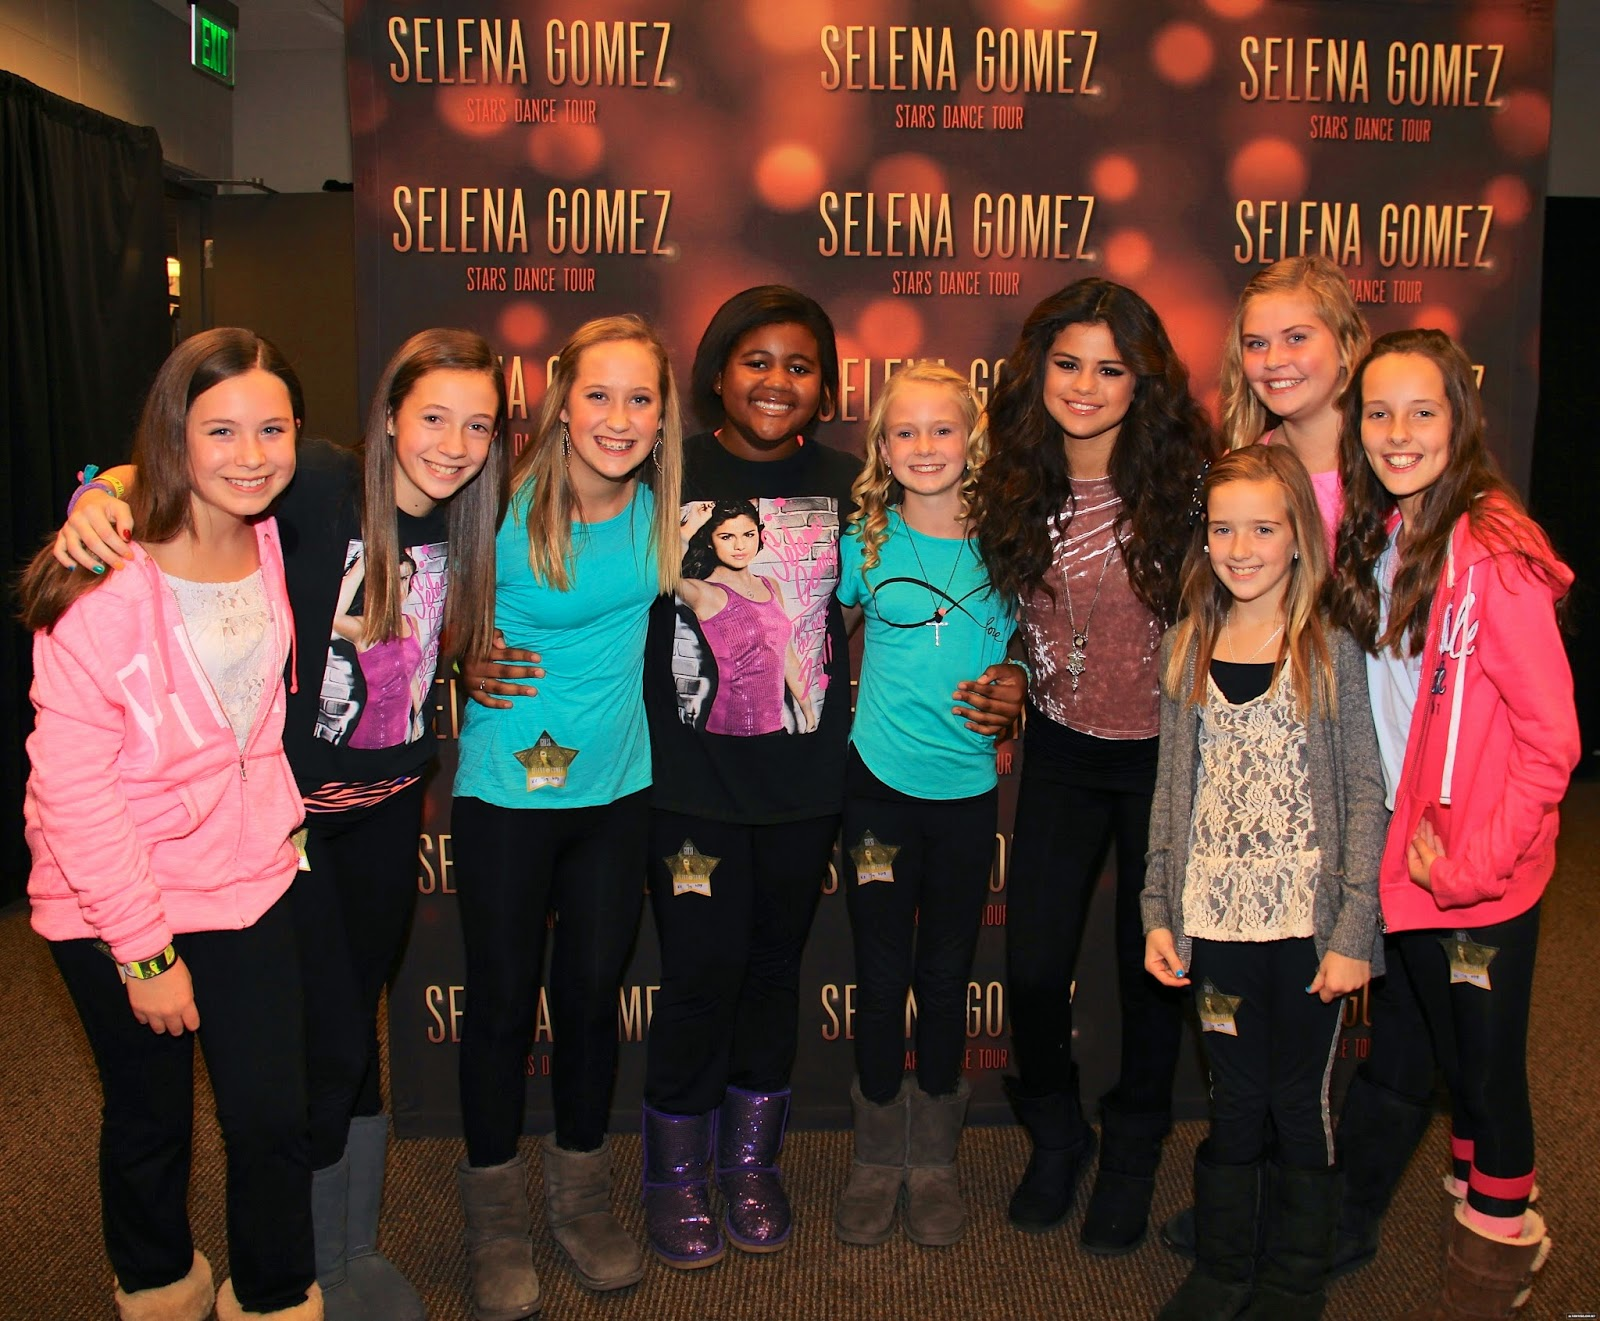 selena gomez meet and greet 2013 nba